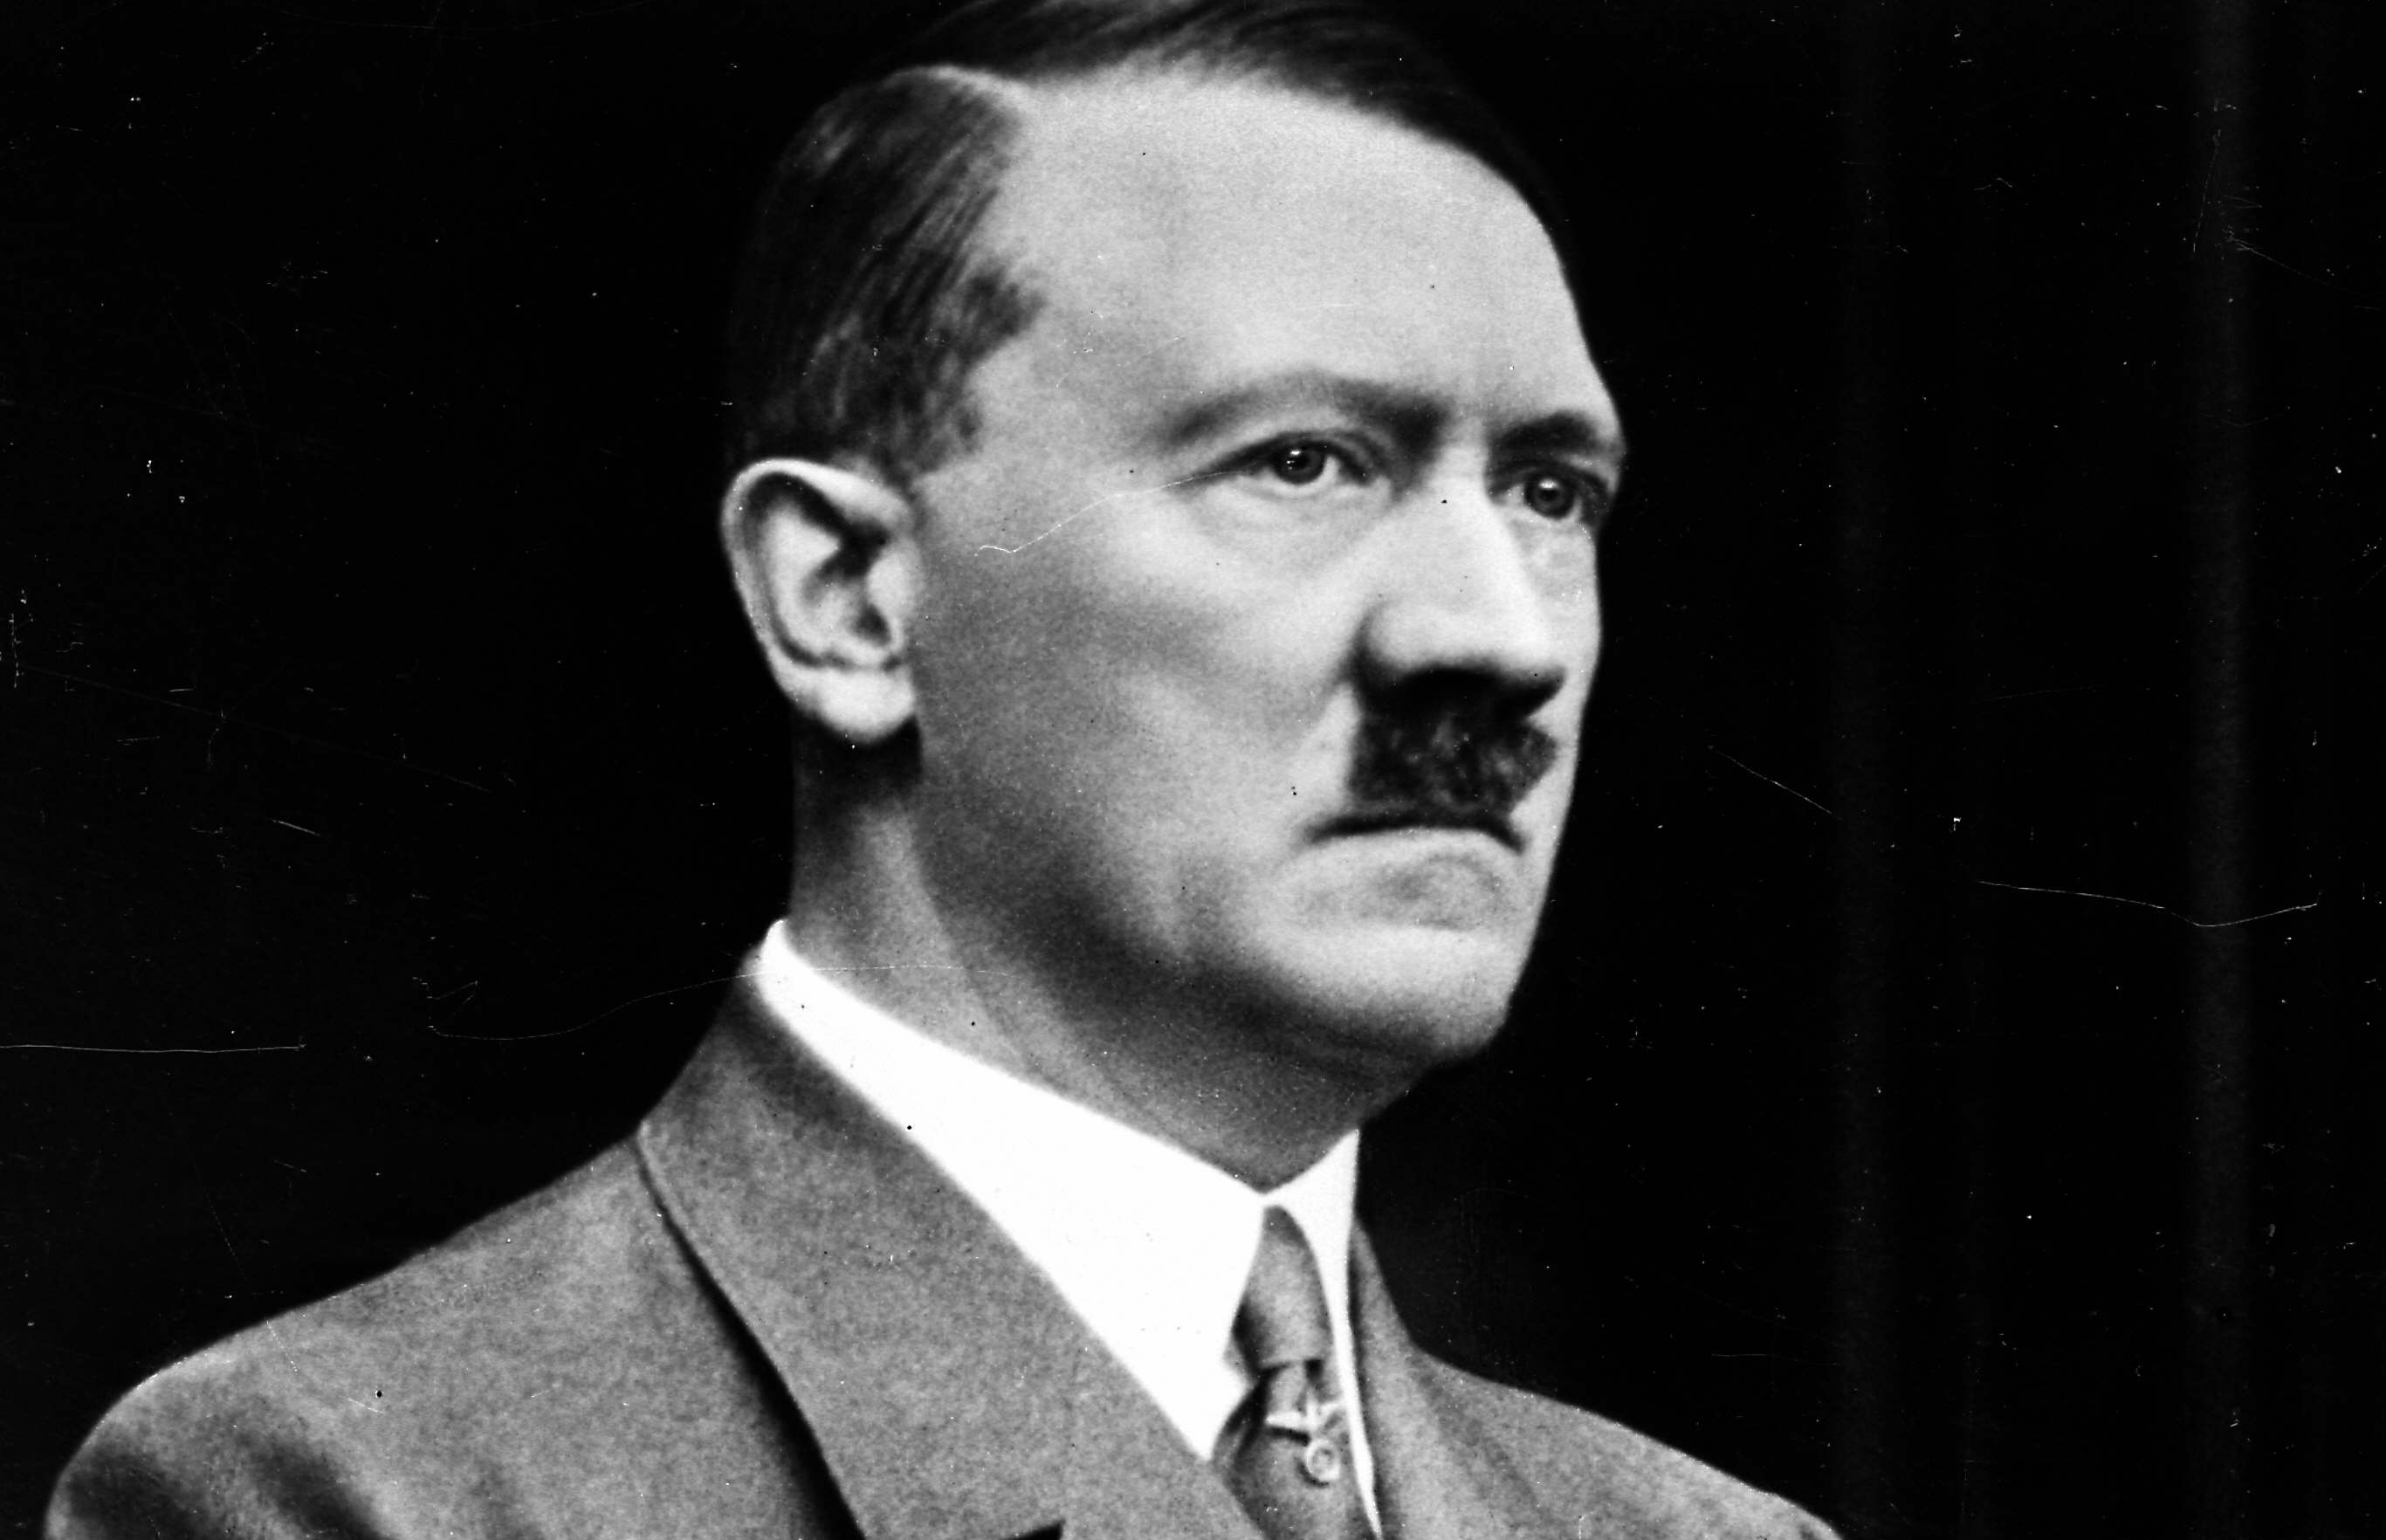 an overview of adolf hitlers views and policies Adolf hitler - rise to power:  hitler, adolf: rise to power overview of adolf hitler's rise to power  views of trevor-roper.